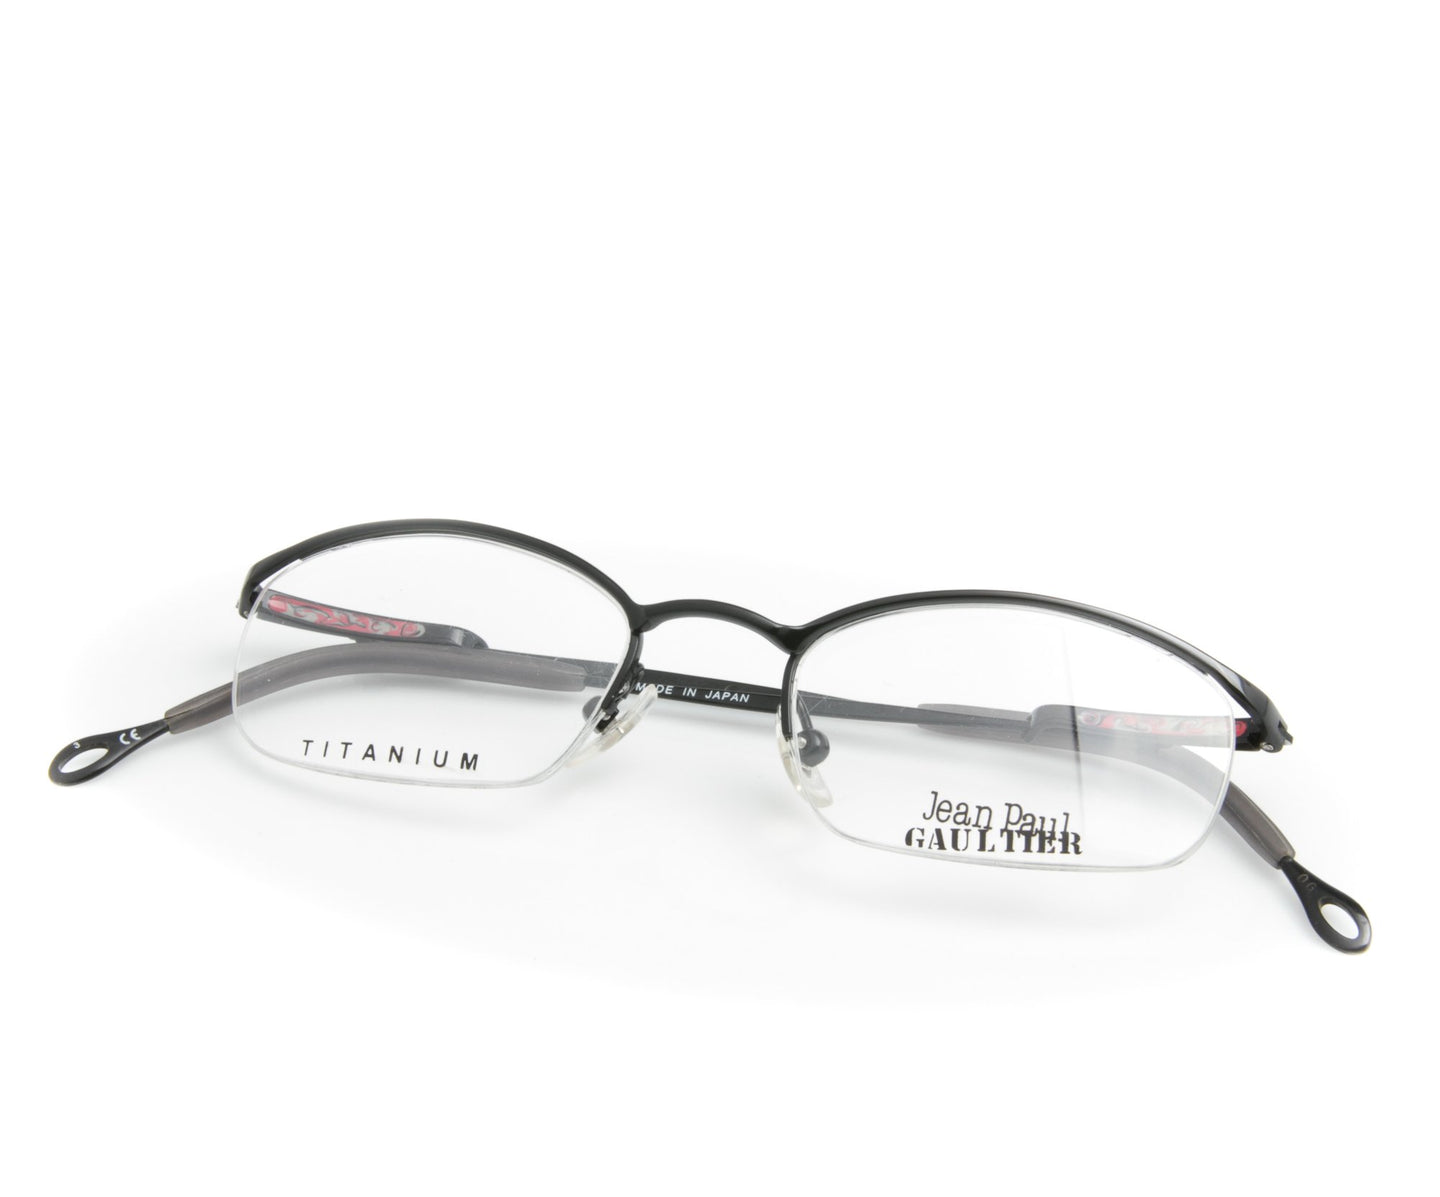 Jean Paul Gaultier 55-0042 3 Titanium-P, Jean Paul Gaultier , glasses frames, eyeglasses online, eyeglass frames, mens glasses, womens glasses, buy glasses online, designer eyeglasses, vintage sunglasses, retro sunglasses, vintage glasses, sunglass, eyeglass, glasses, lens, vintage frames company, vf